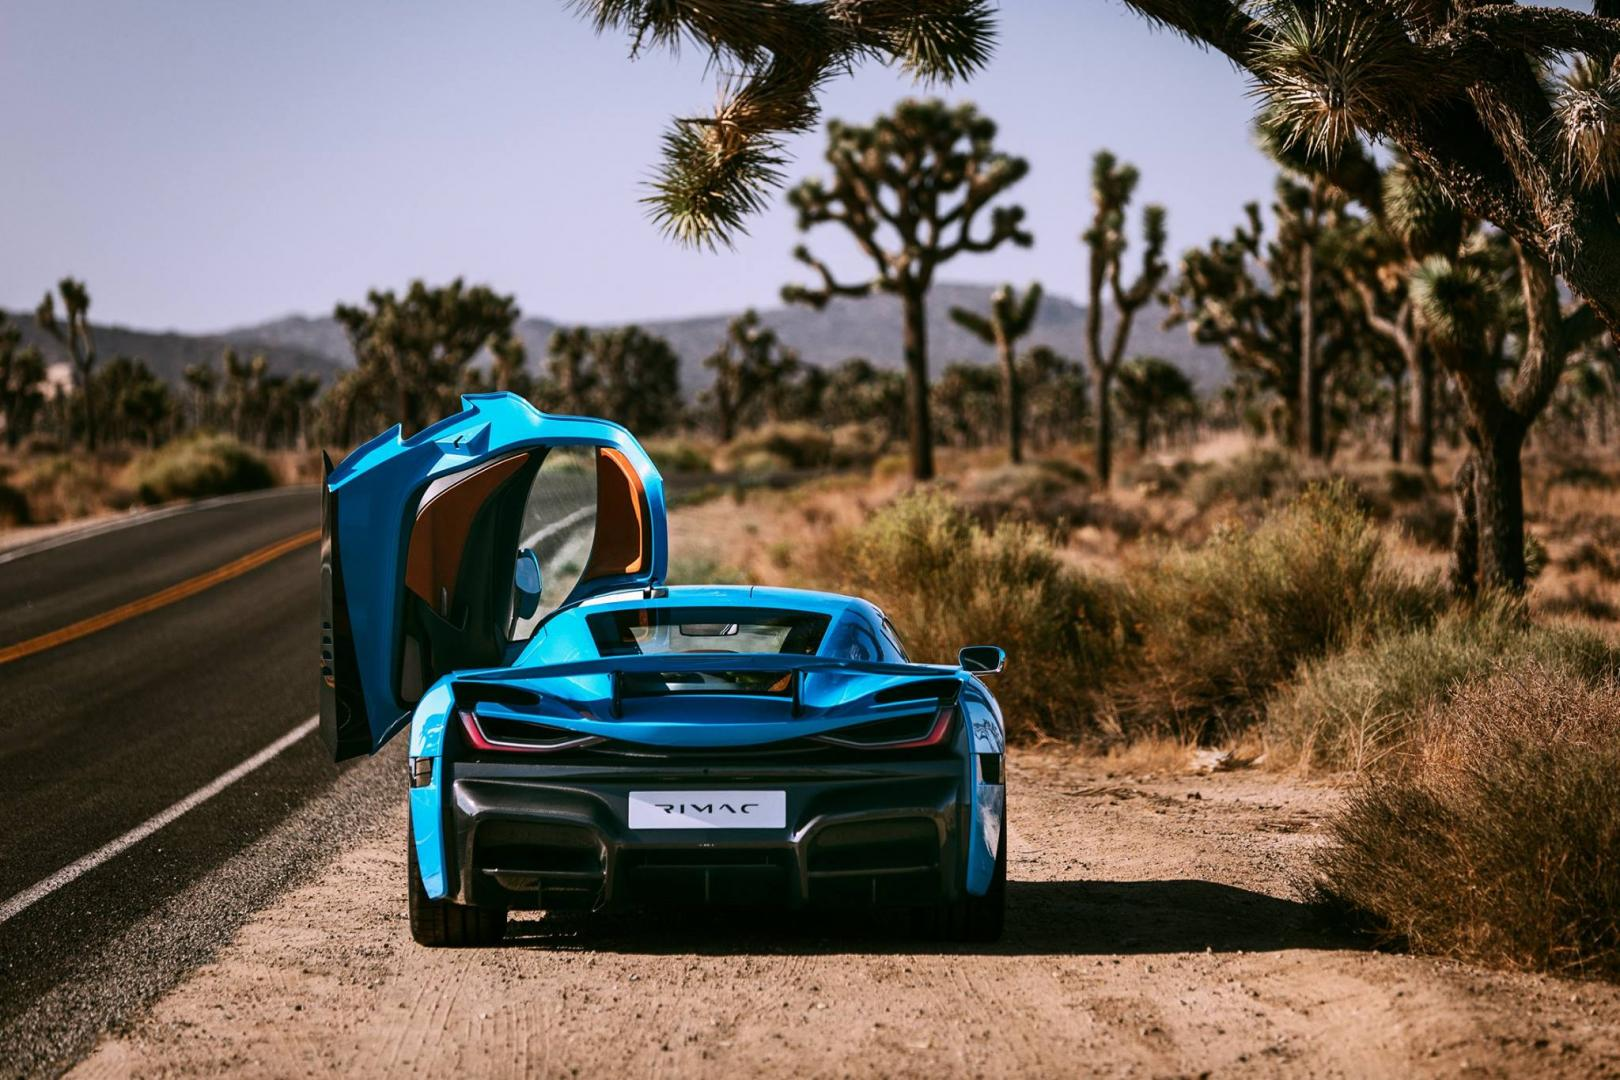 Rimac C two californie